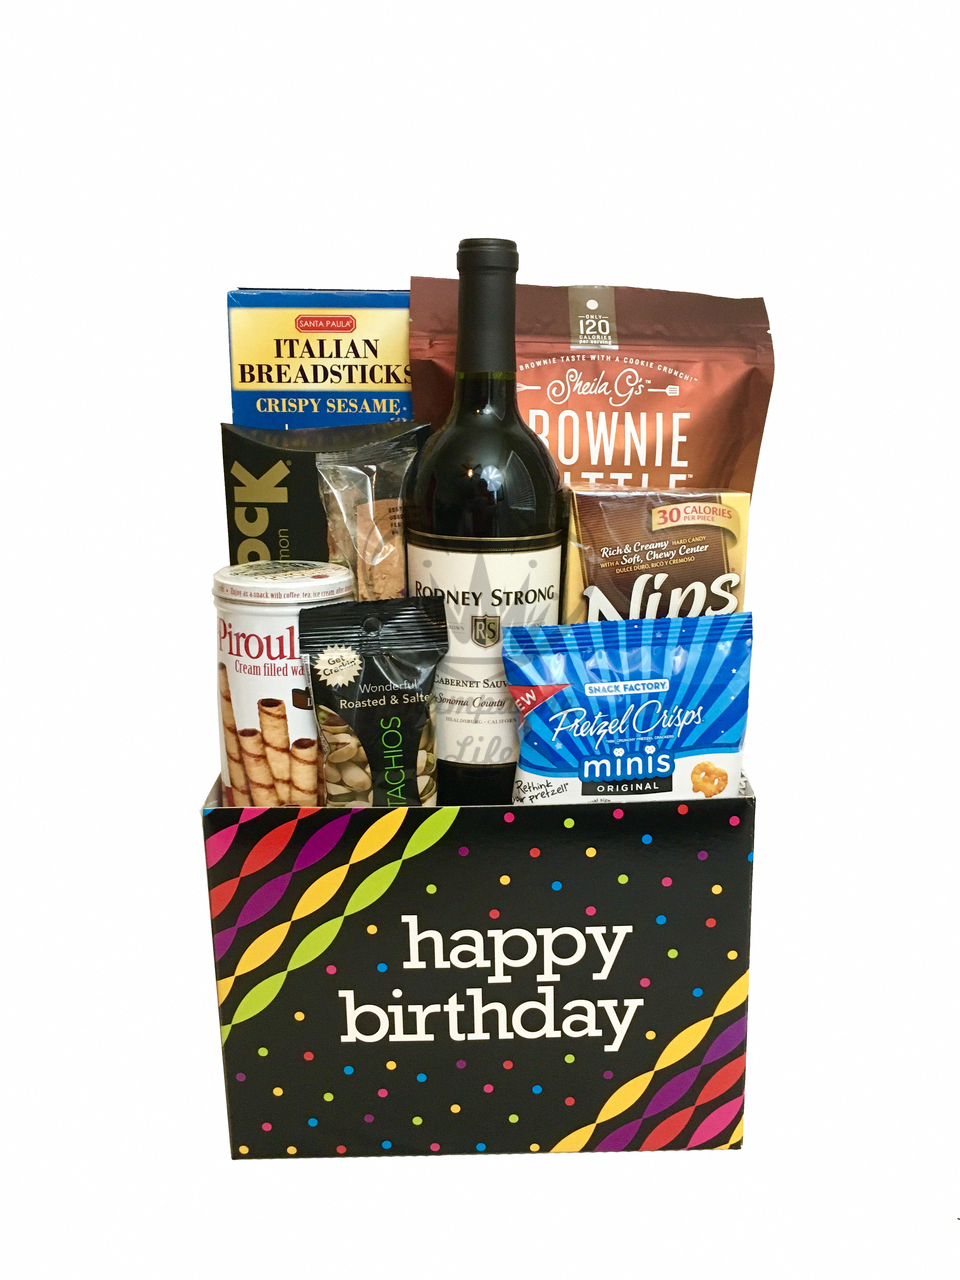 The Wine Birthday Gift Box Is Available For Same Day Delivery In Las Vegas NV